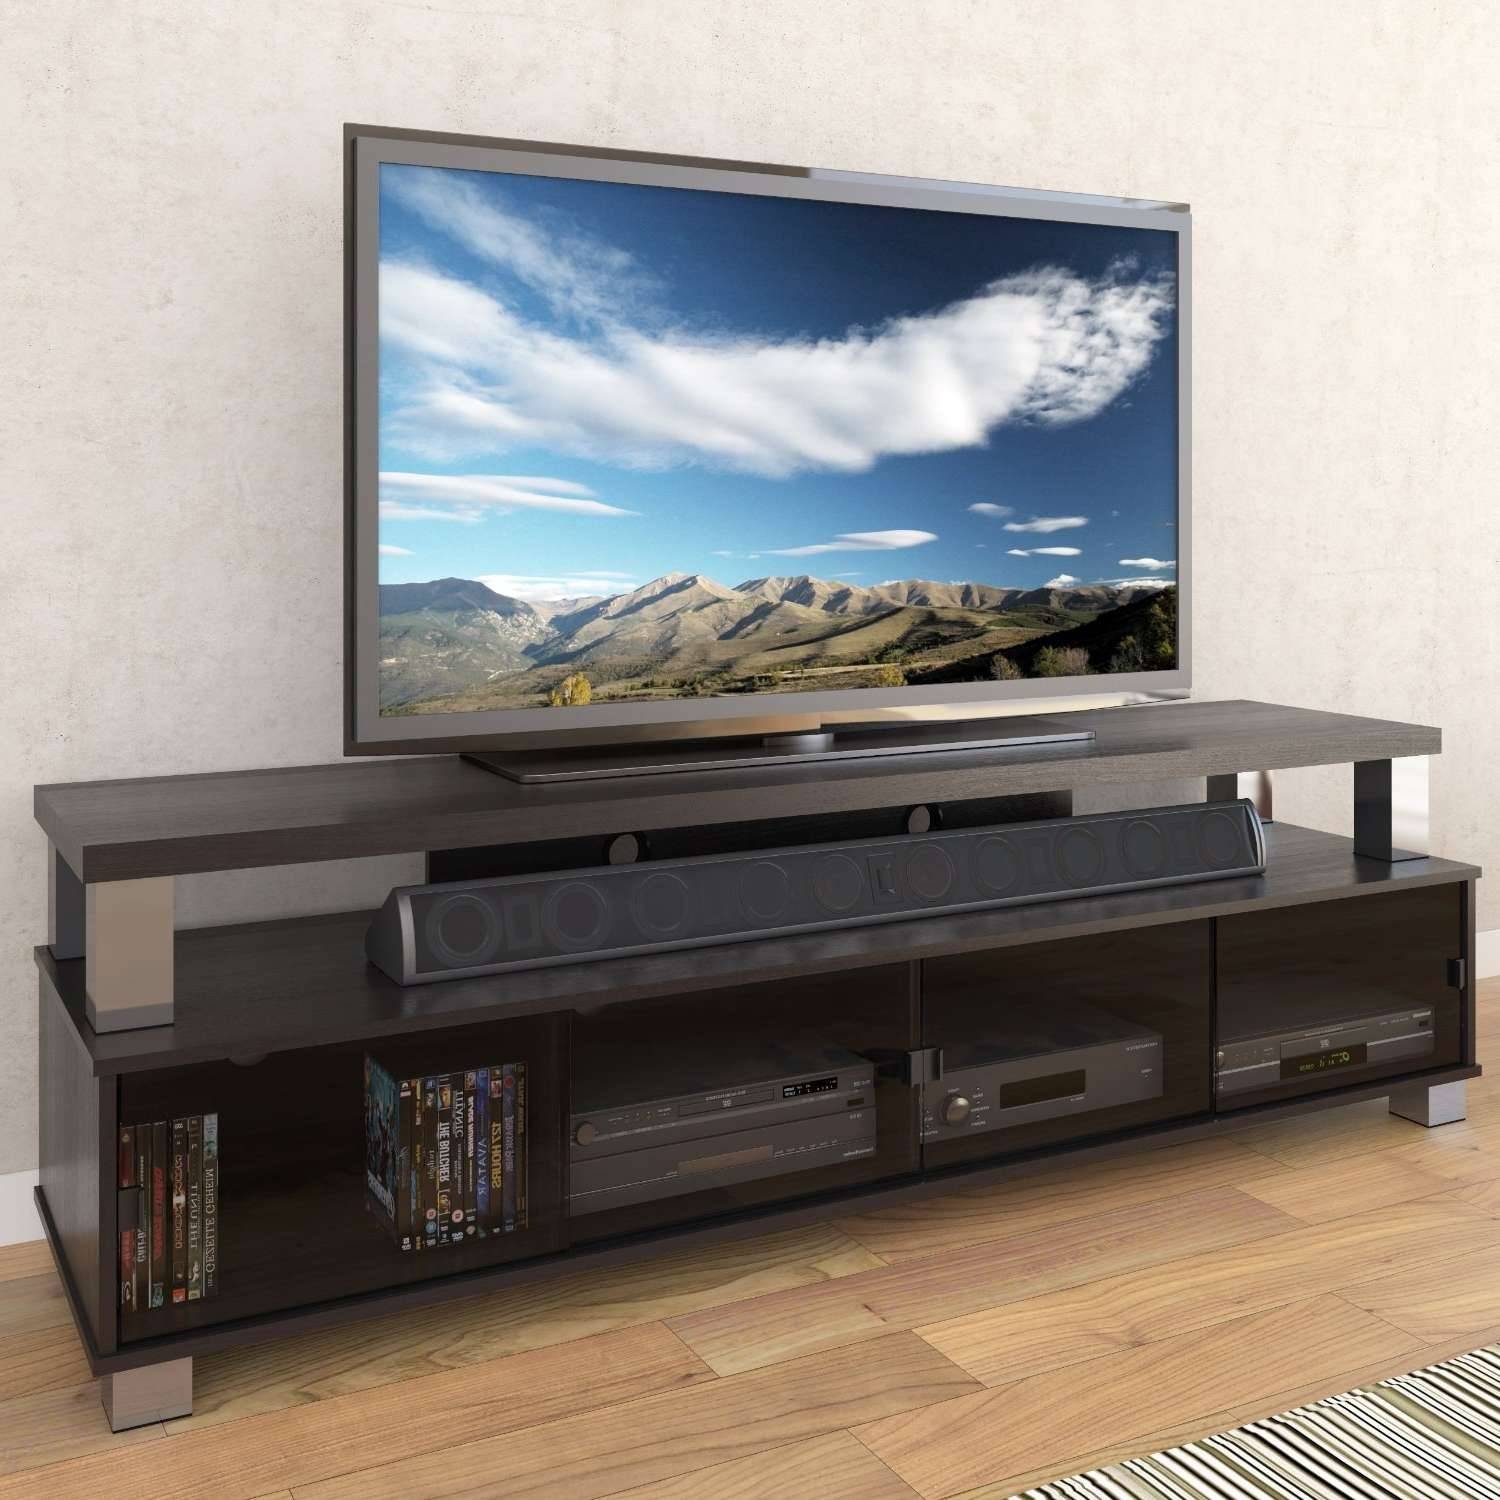 Long Black Rectangular Big Screen Tv Stands Of Interesting Big Throughout Long Black Tv Stands (View 9 of 15)